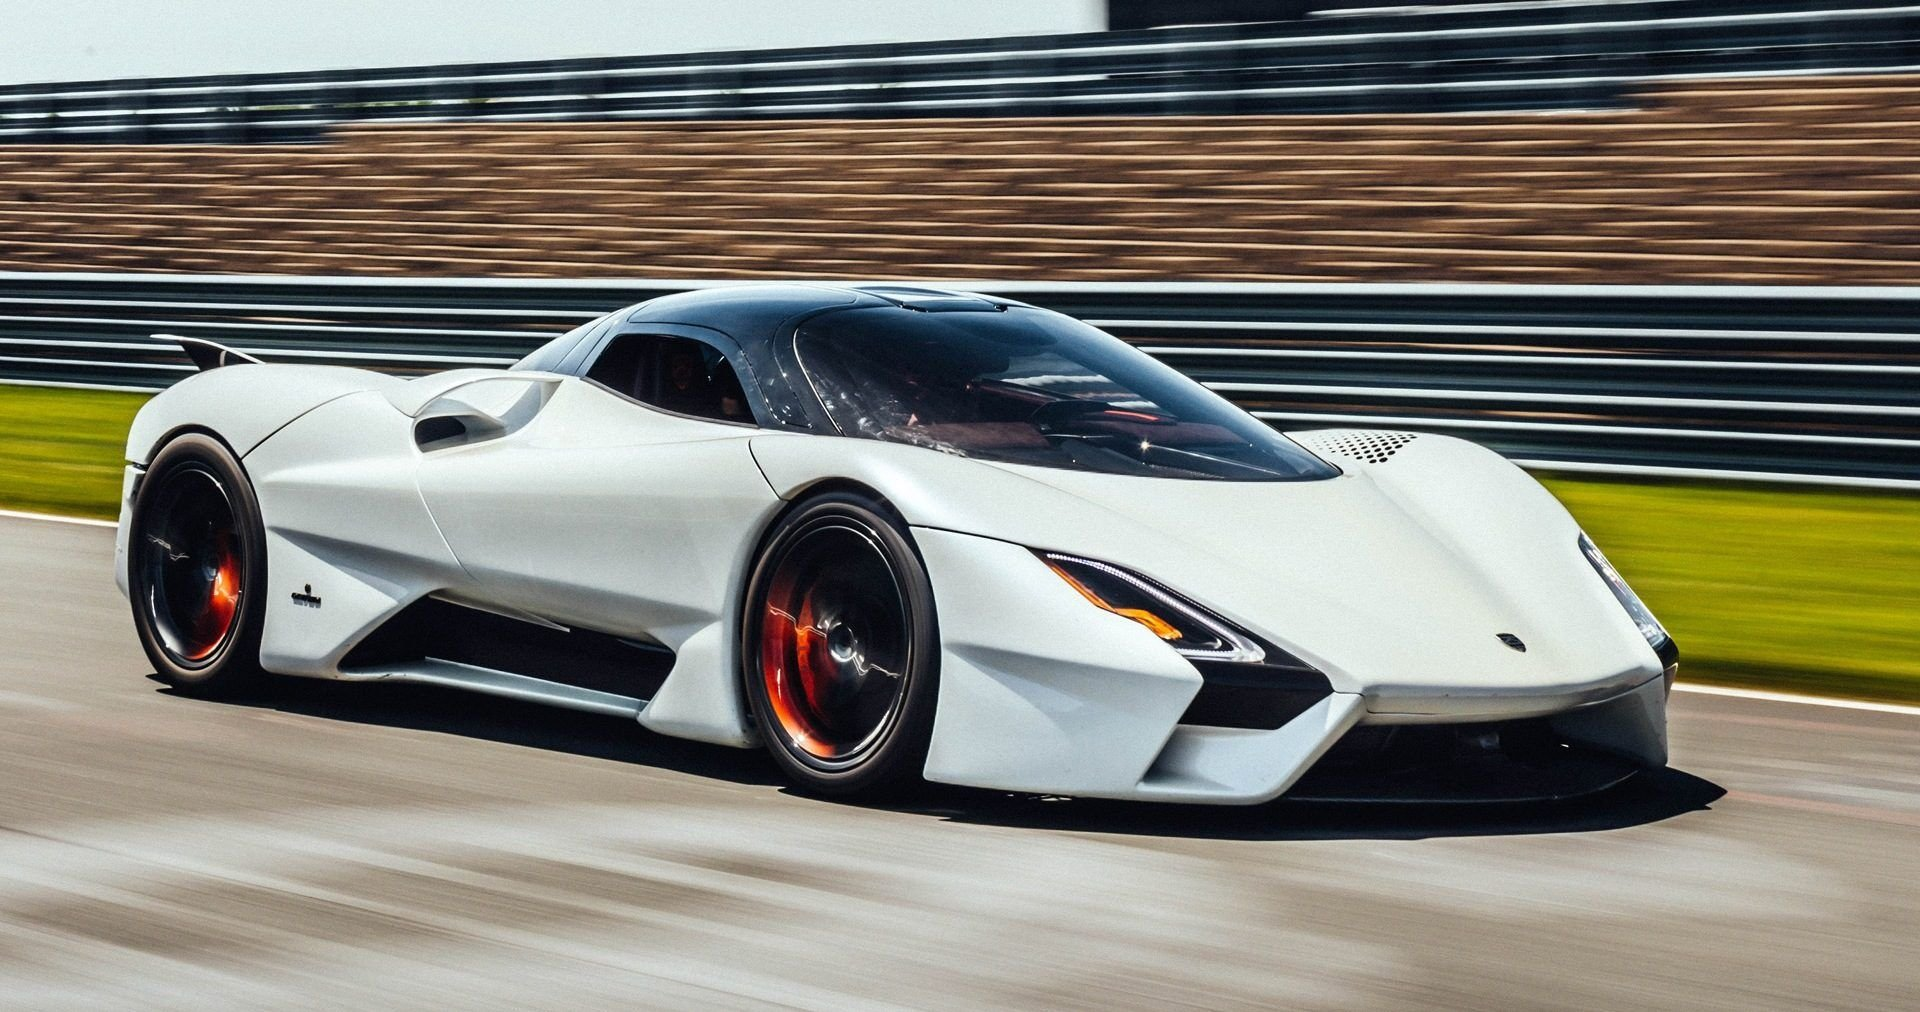 Ranking The Fastest Manual Transmission Sports Cars In The World